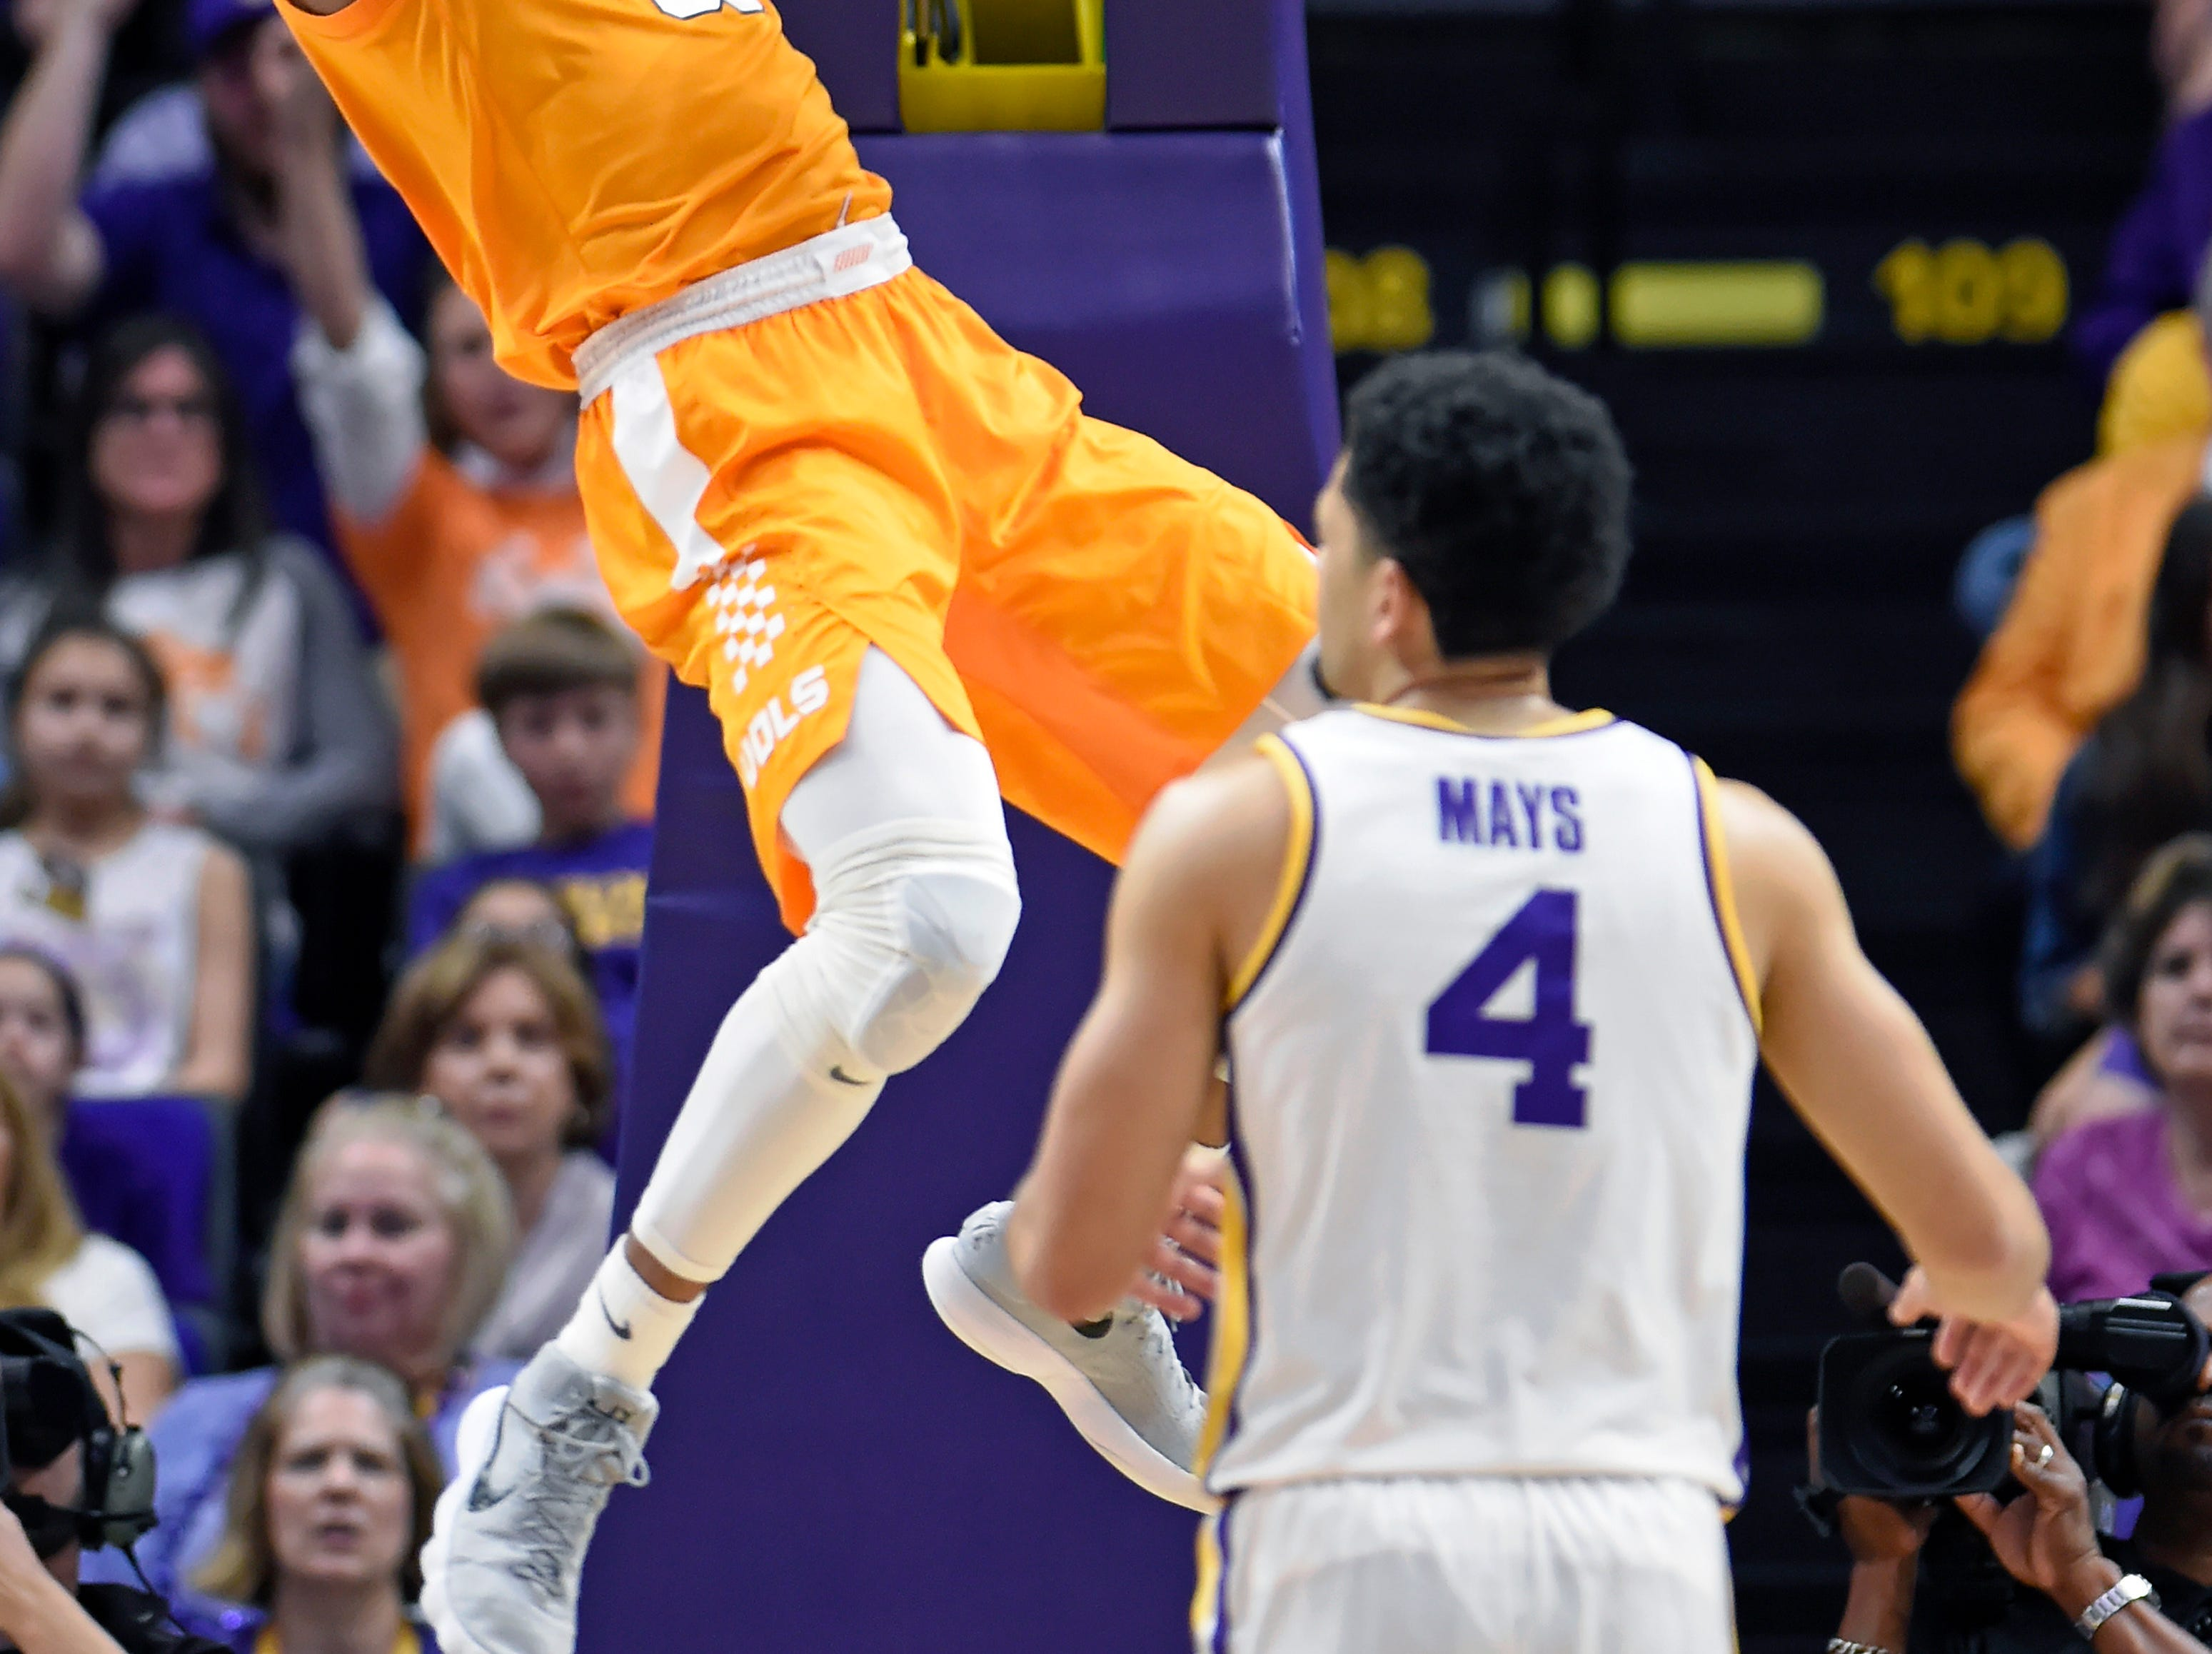 Tennessee guard Yves Pons (35) dunks the ball in front of LSU guard Skylar Mays (4) in the first half of an NCAA college basketball game, Saturday, Feb. 23, 2019, in Baton Rouge, La. (AP Photo/Bill Feig)